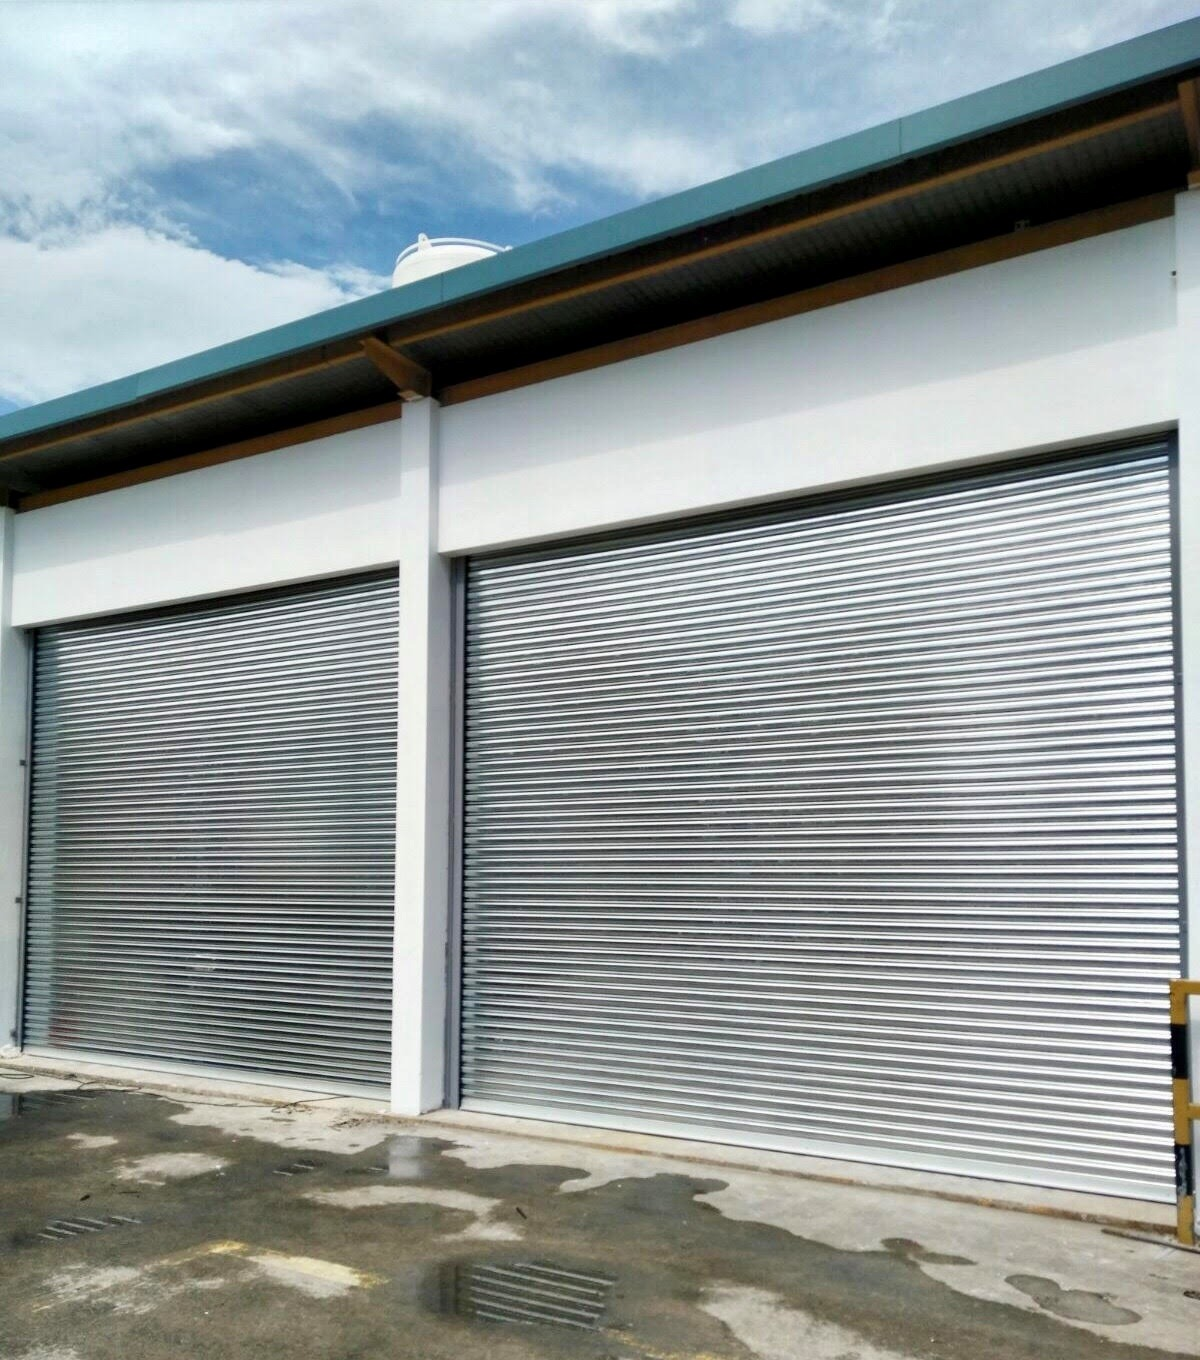 Two Sets of Motorised Operated Steel (Galvanised) Roller Shutter for New Extension of Stand-Alone Shed at Pioneer Sector